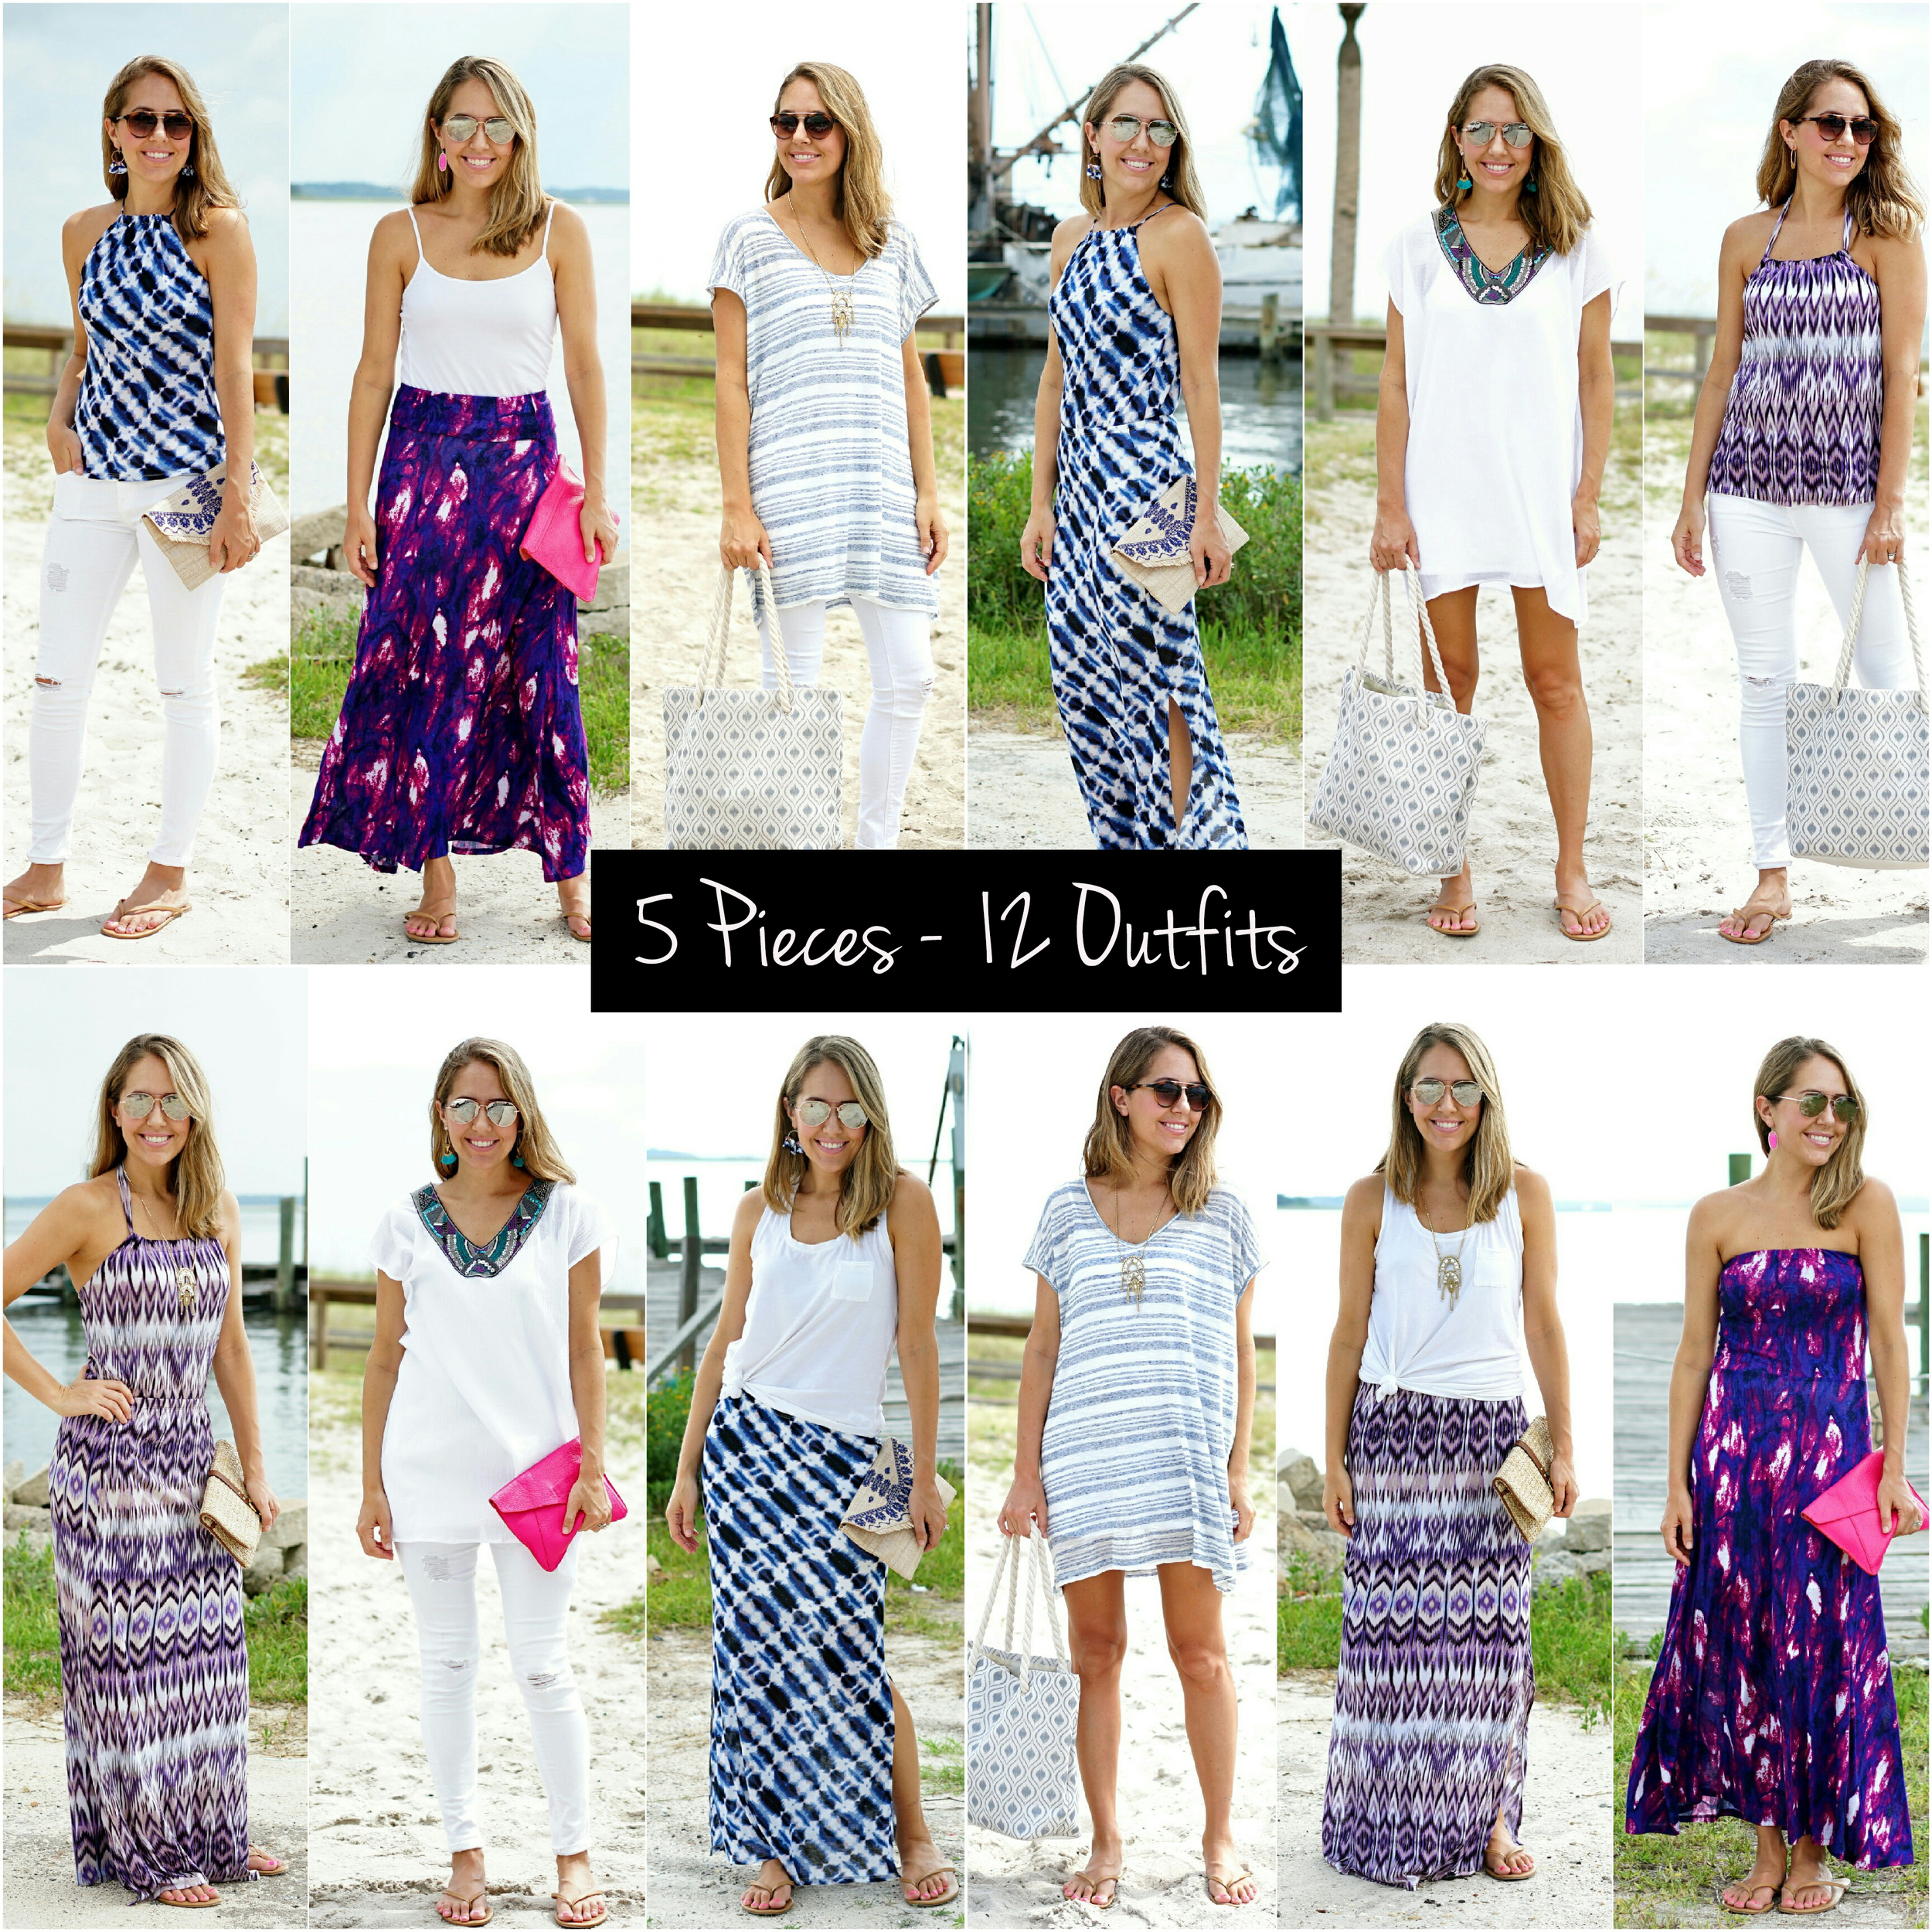 VacayStyle - 5 Pieces, 12 Outfits